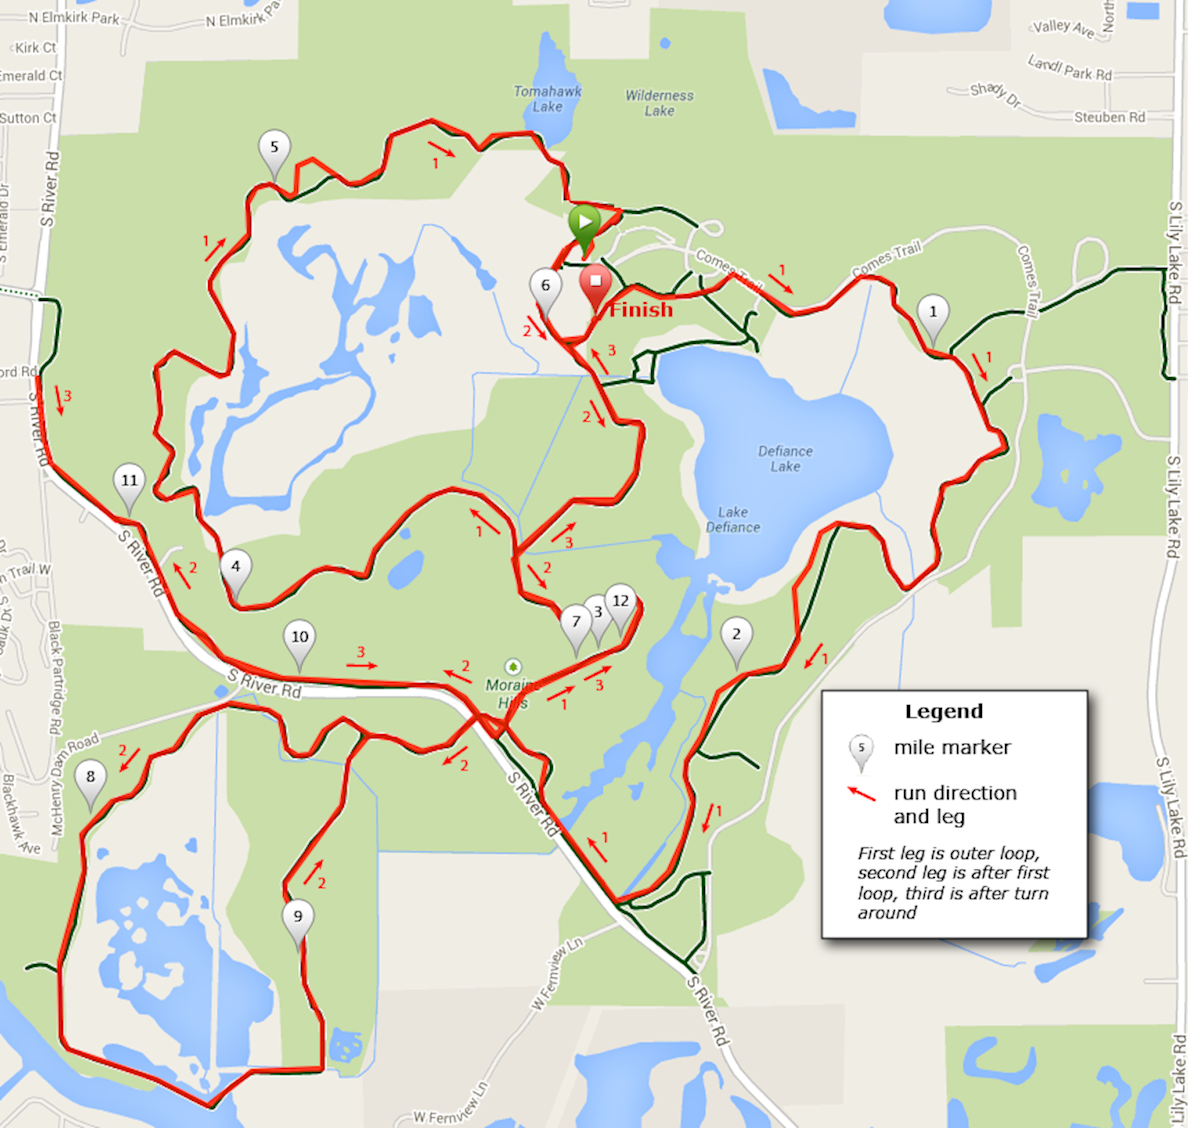 Moraine Hills Run for the Hills 10K and Half Marathon Route Map